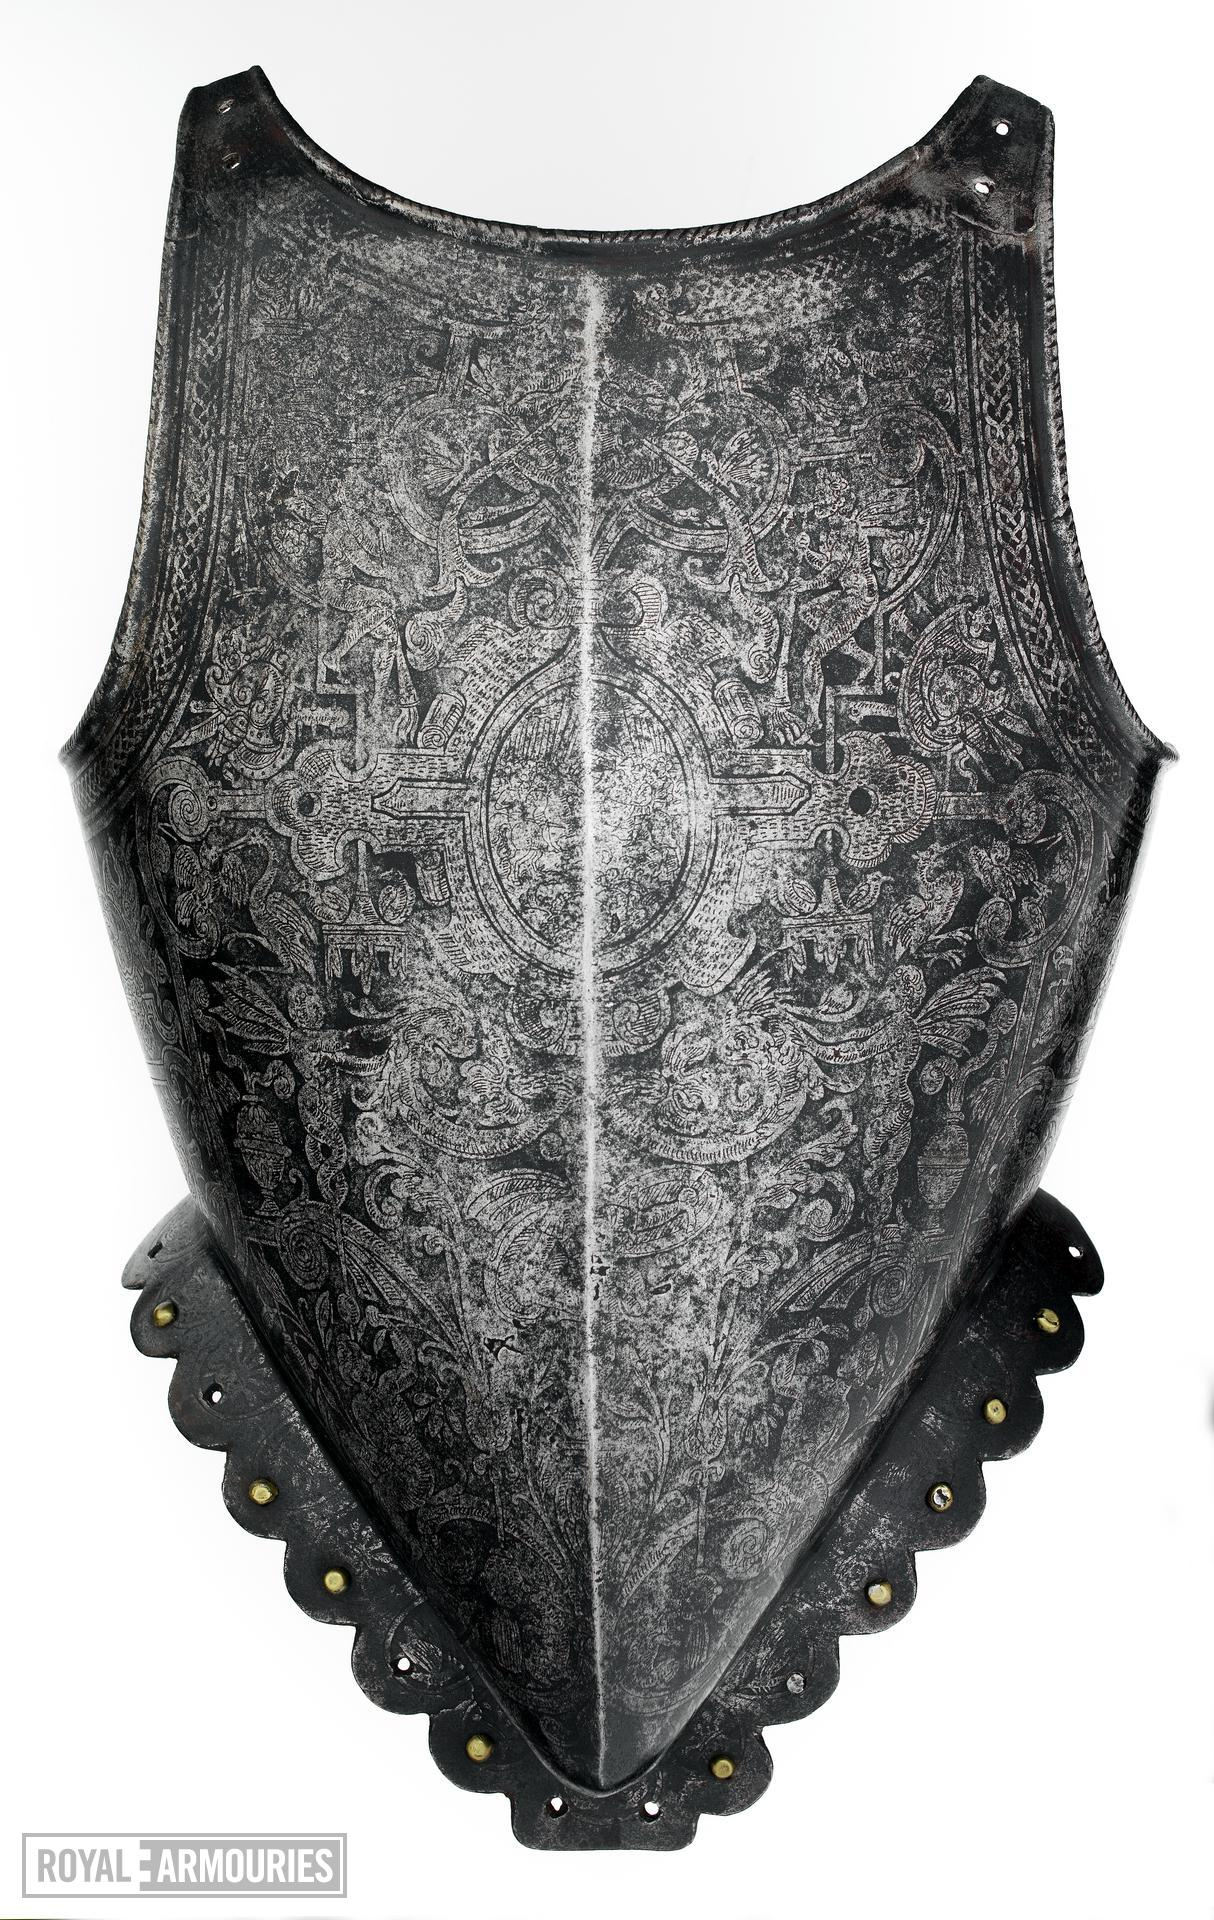 Breastplate. Probably Flemish, about 1583. Made by Adrian Collaert (III.1218)